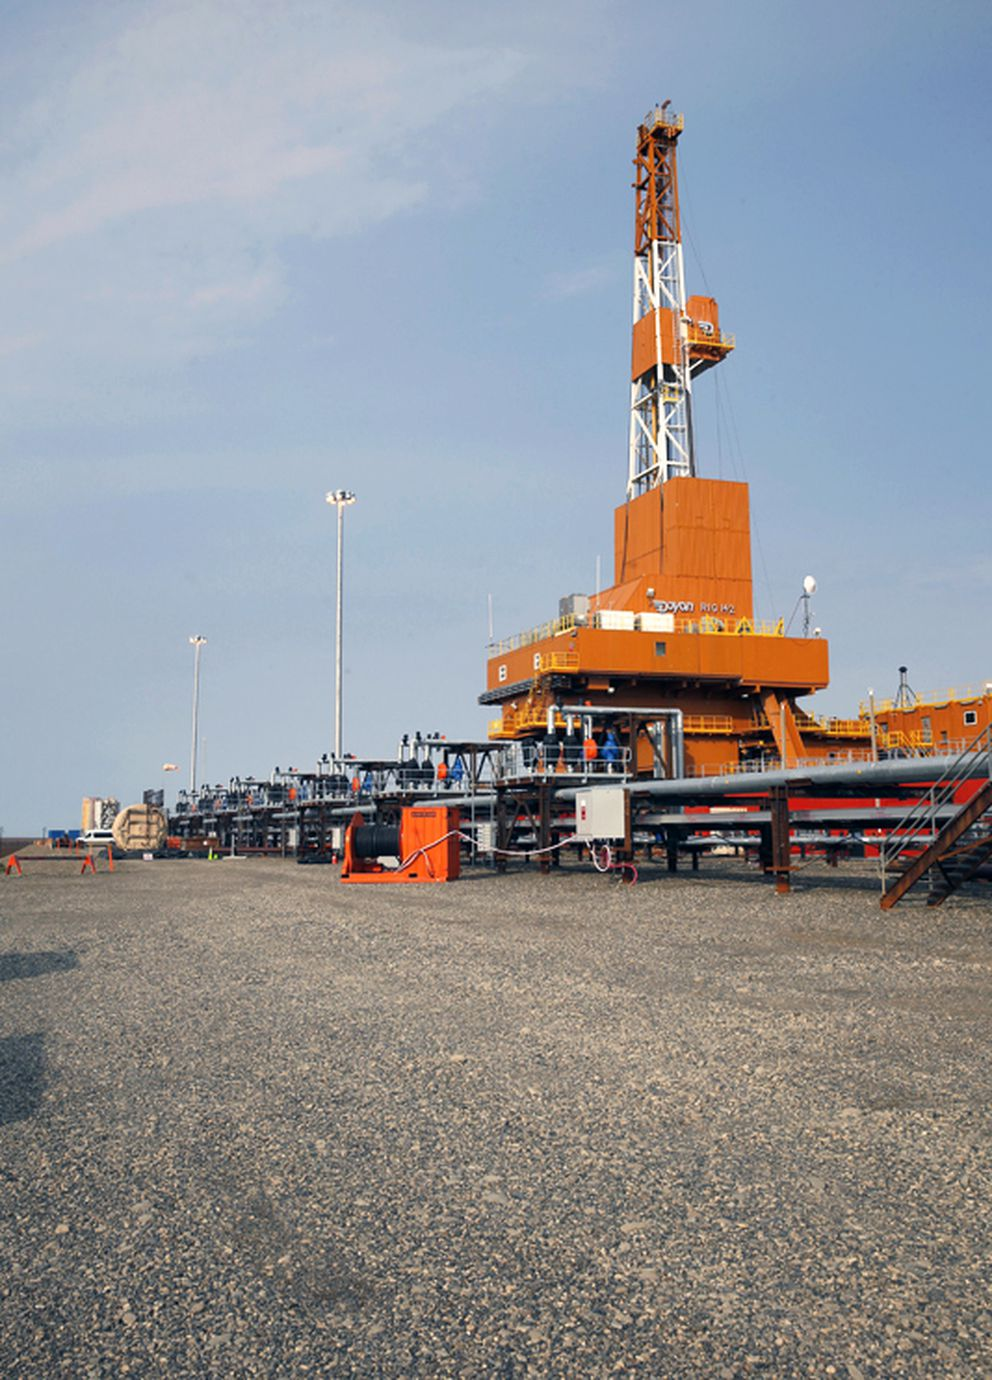 The new Doyon 142 drilling rig operates on the Kuparuk Drill Site 2S pad in August. (Judy Patrick / ConocoPhillips)